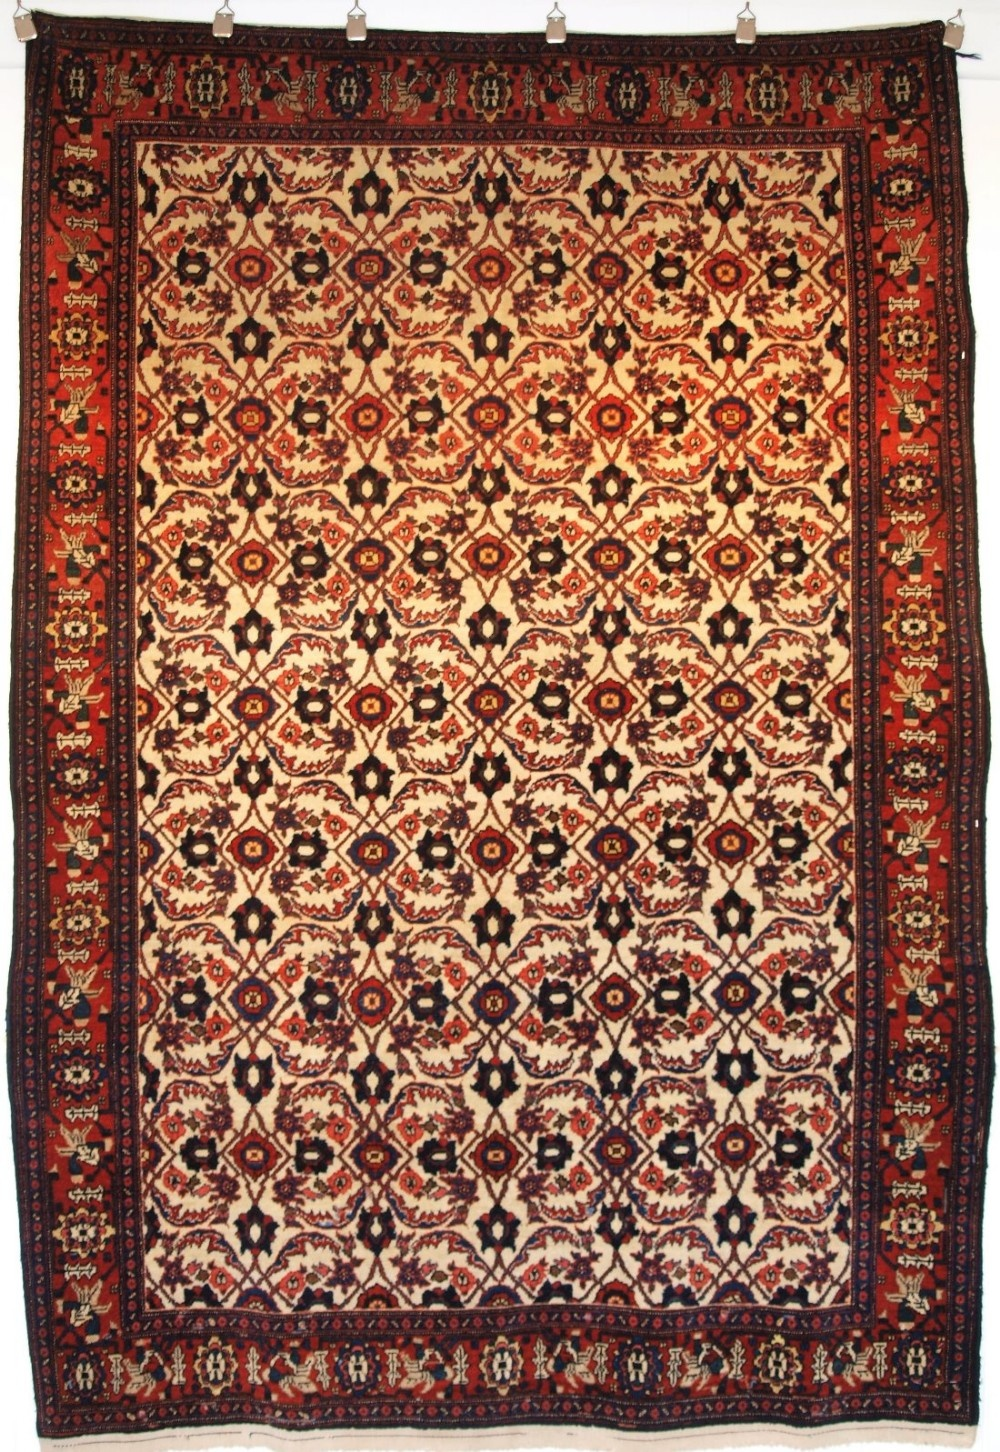 antique senneh rug ivory ground with herati design full pile circa 1900